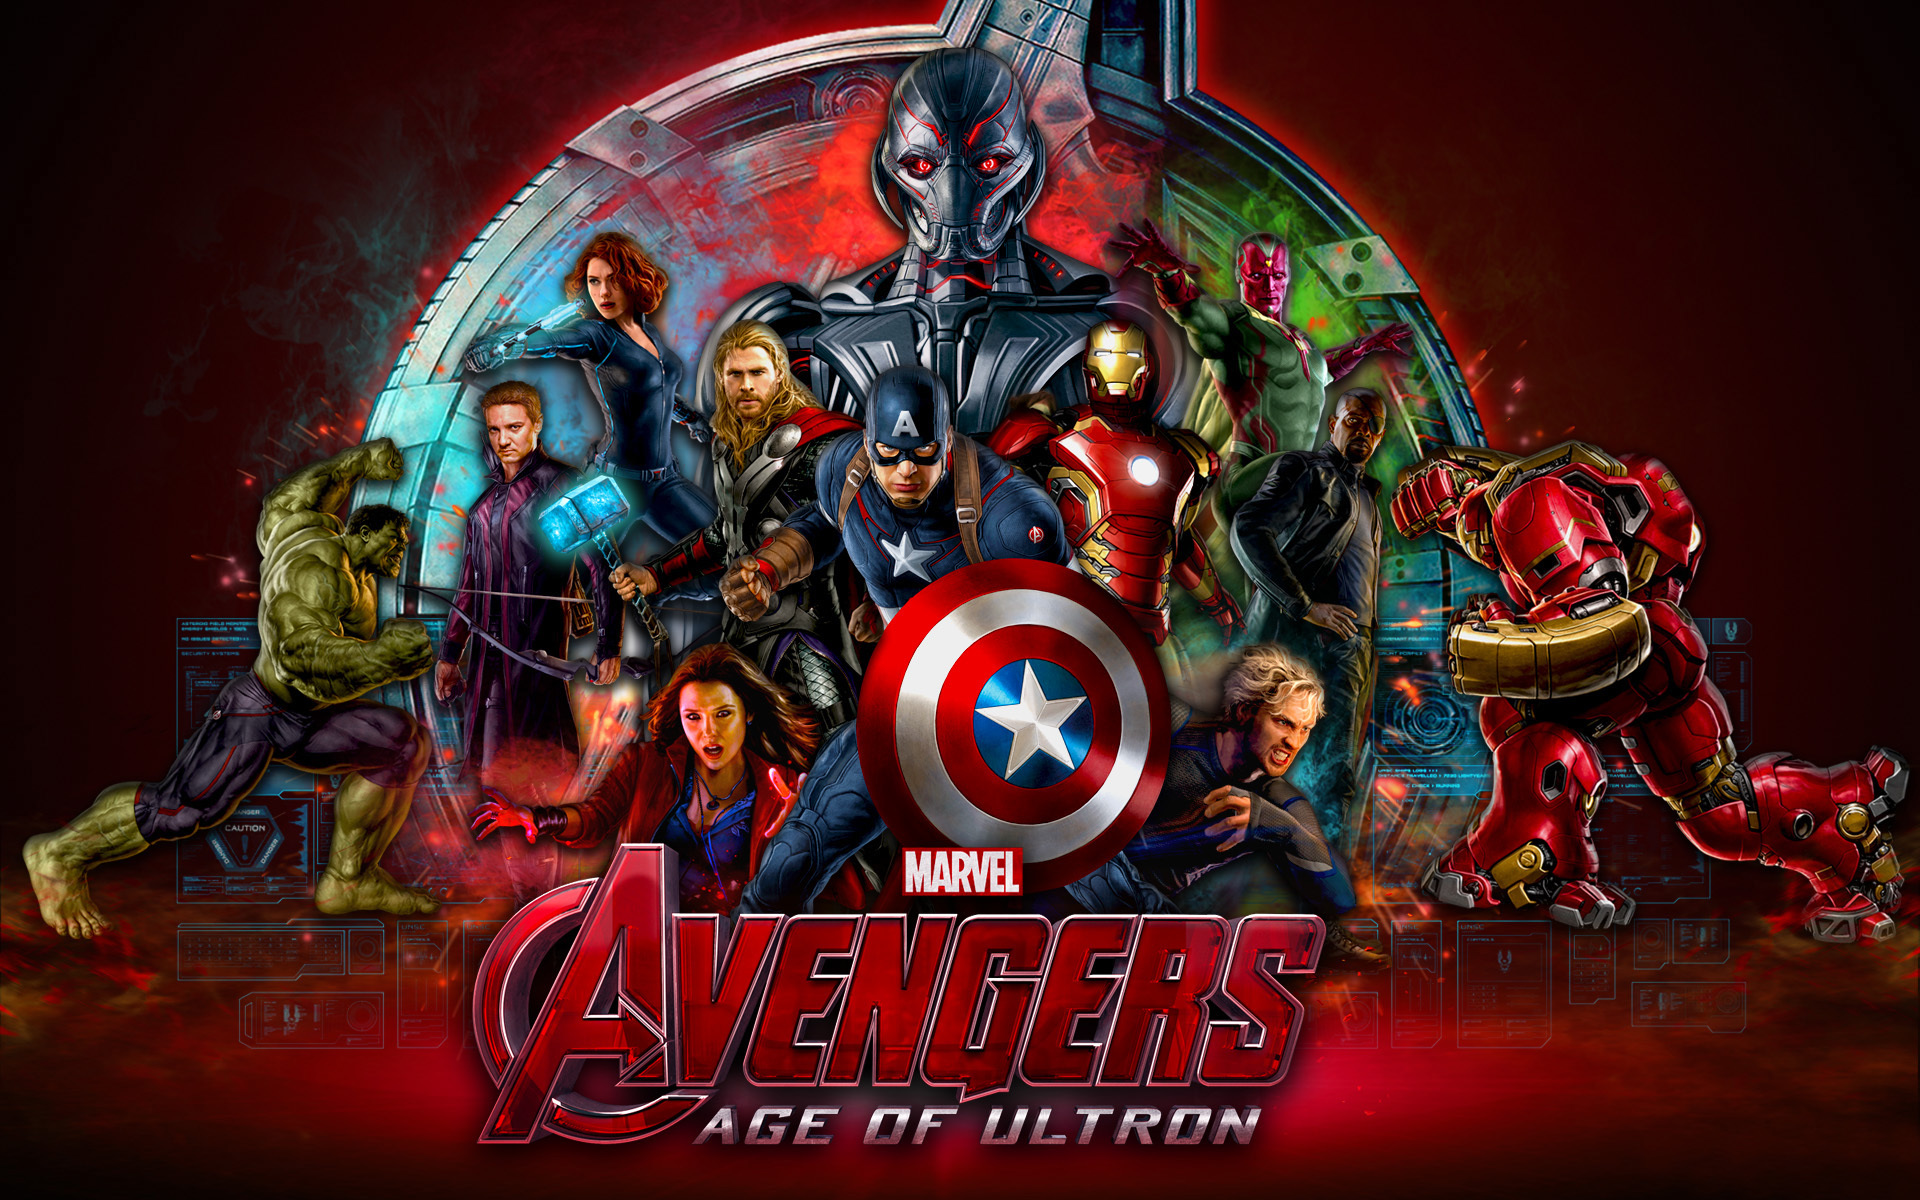 Cars The Movie Wallpapers Free Marvel Studios Avengers Age Of Ultron 2015 Desktop